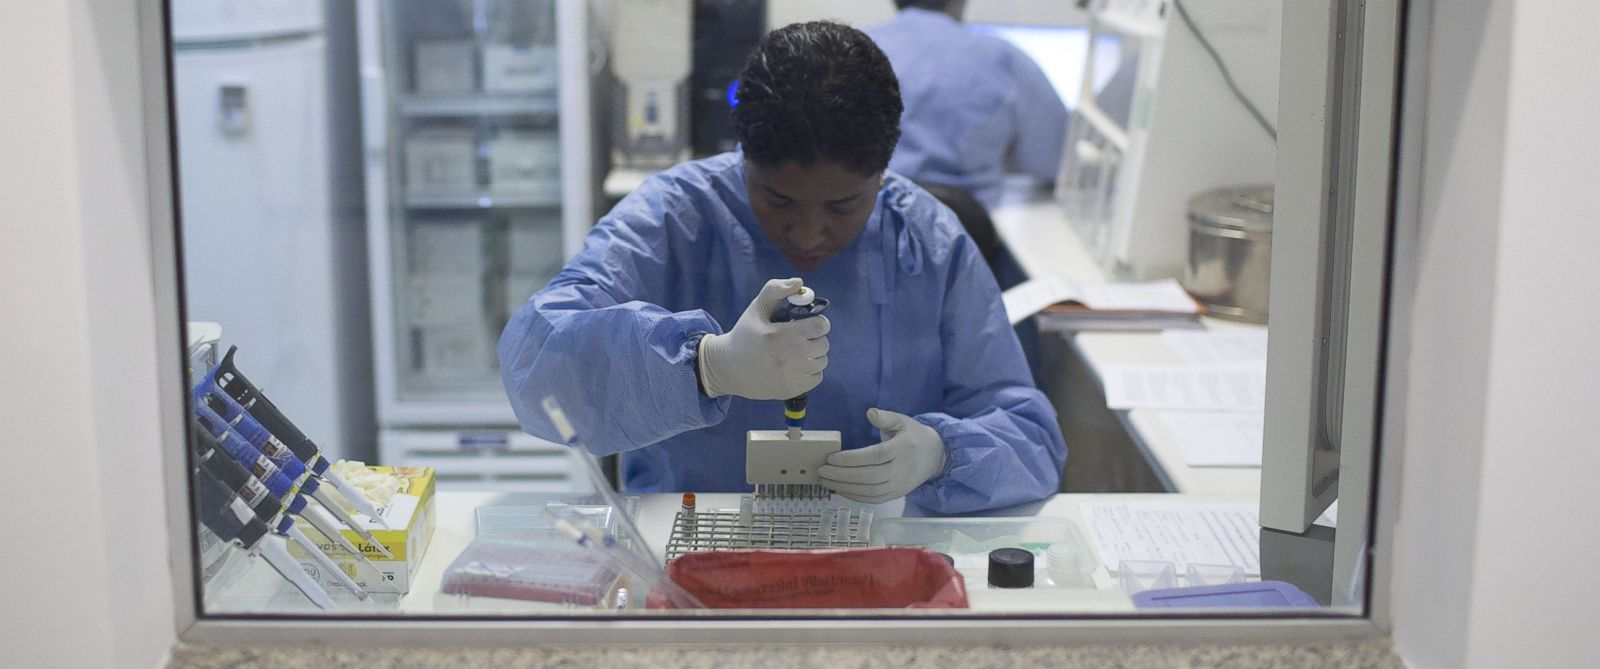 PHOTO: A graduate student works on analyzing samples to identify the Zika virus in a laboratory at the Fiocruz institute in Rio de Janeiro, Brazil, Jan. 22, 2016.